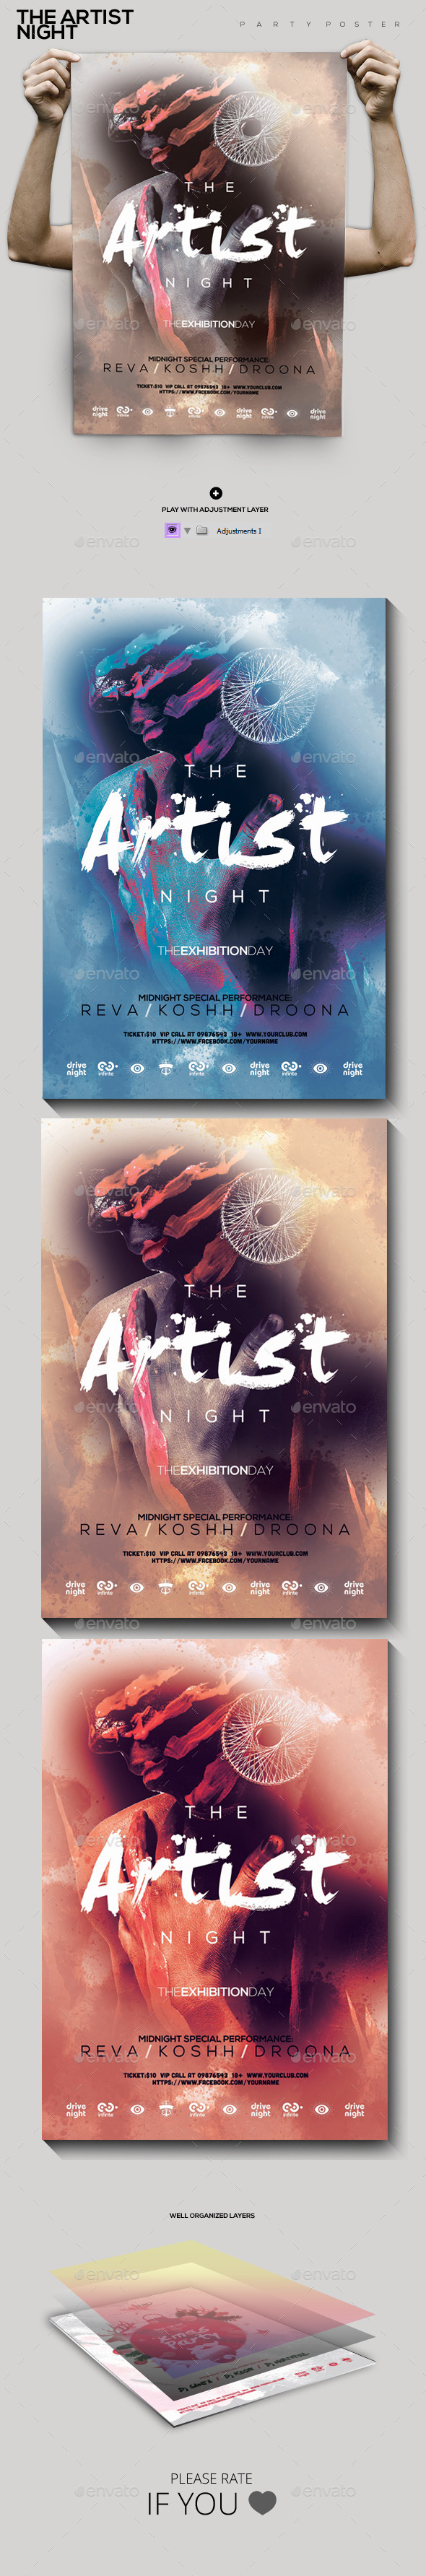 The Artist Night Party Flyer/Poster - Clubs & Parties Events